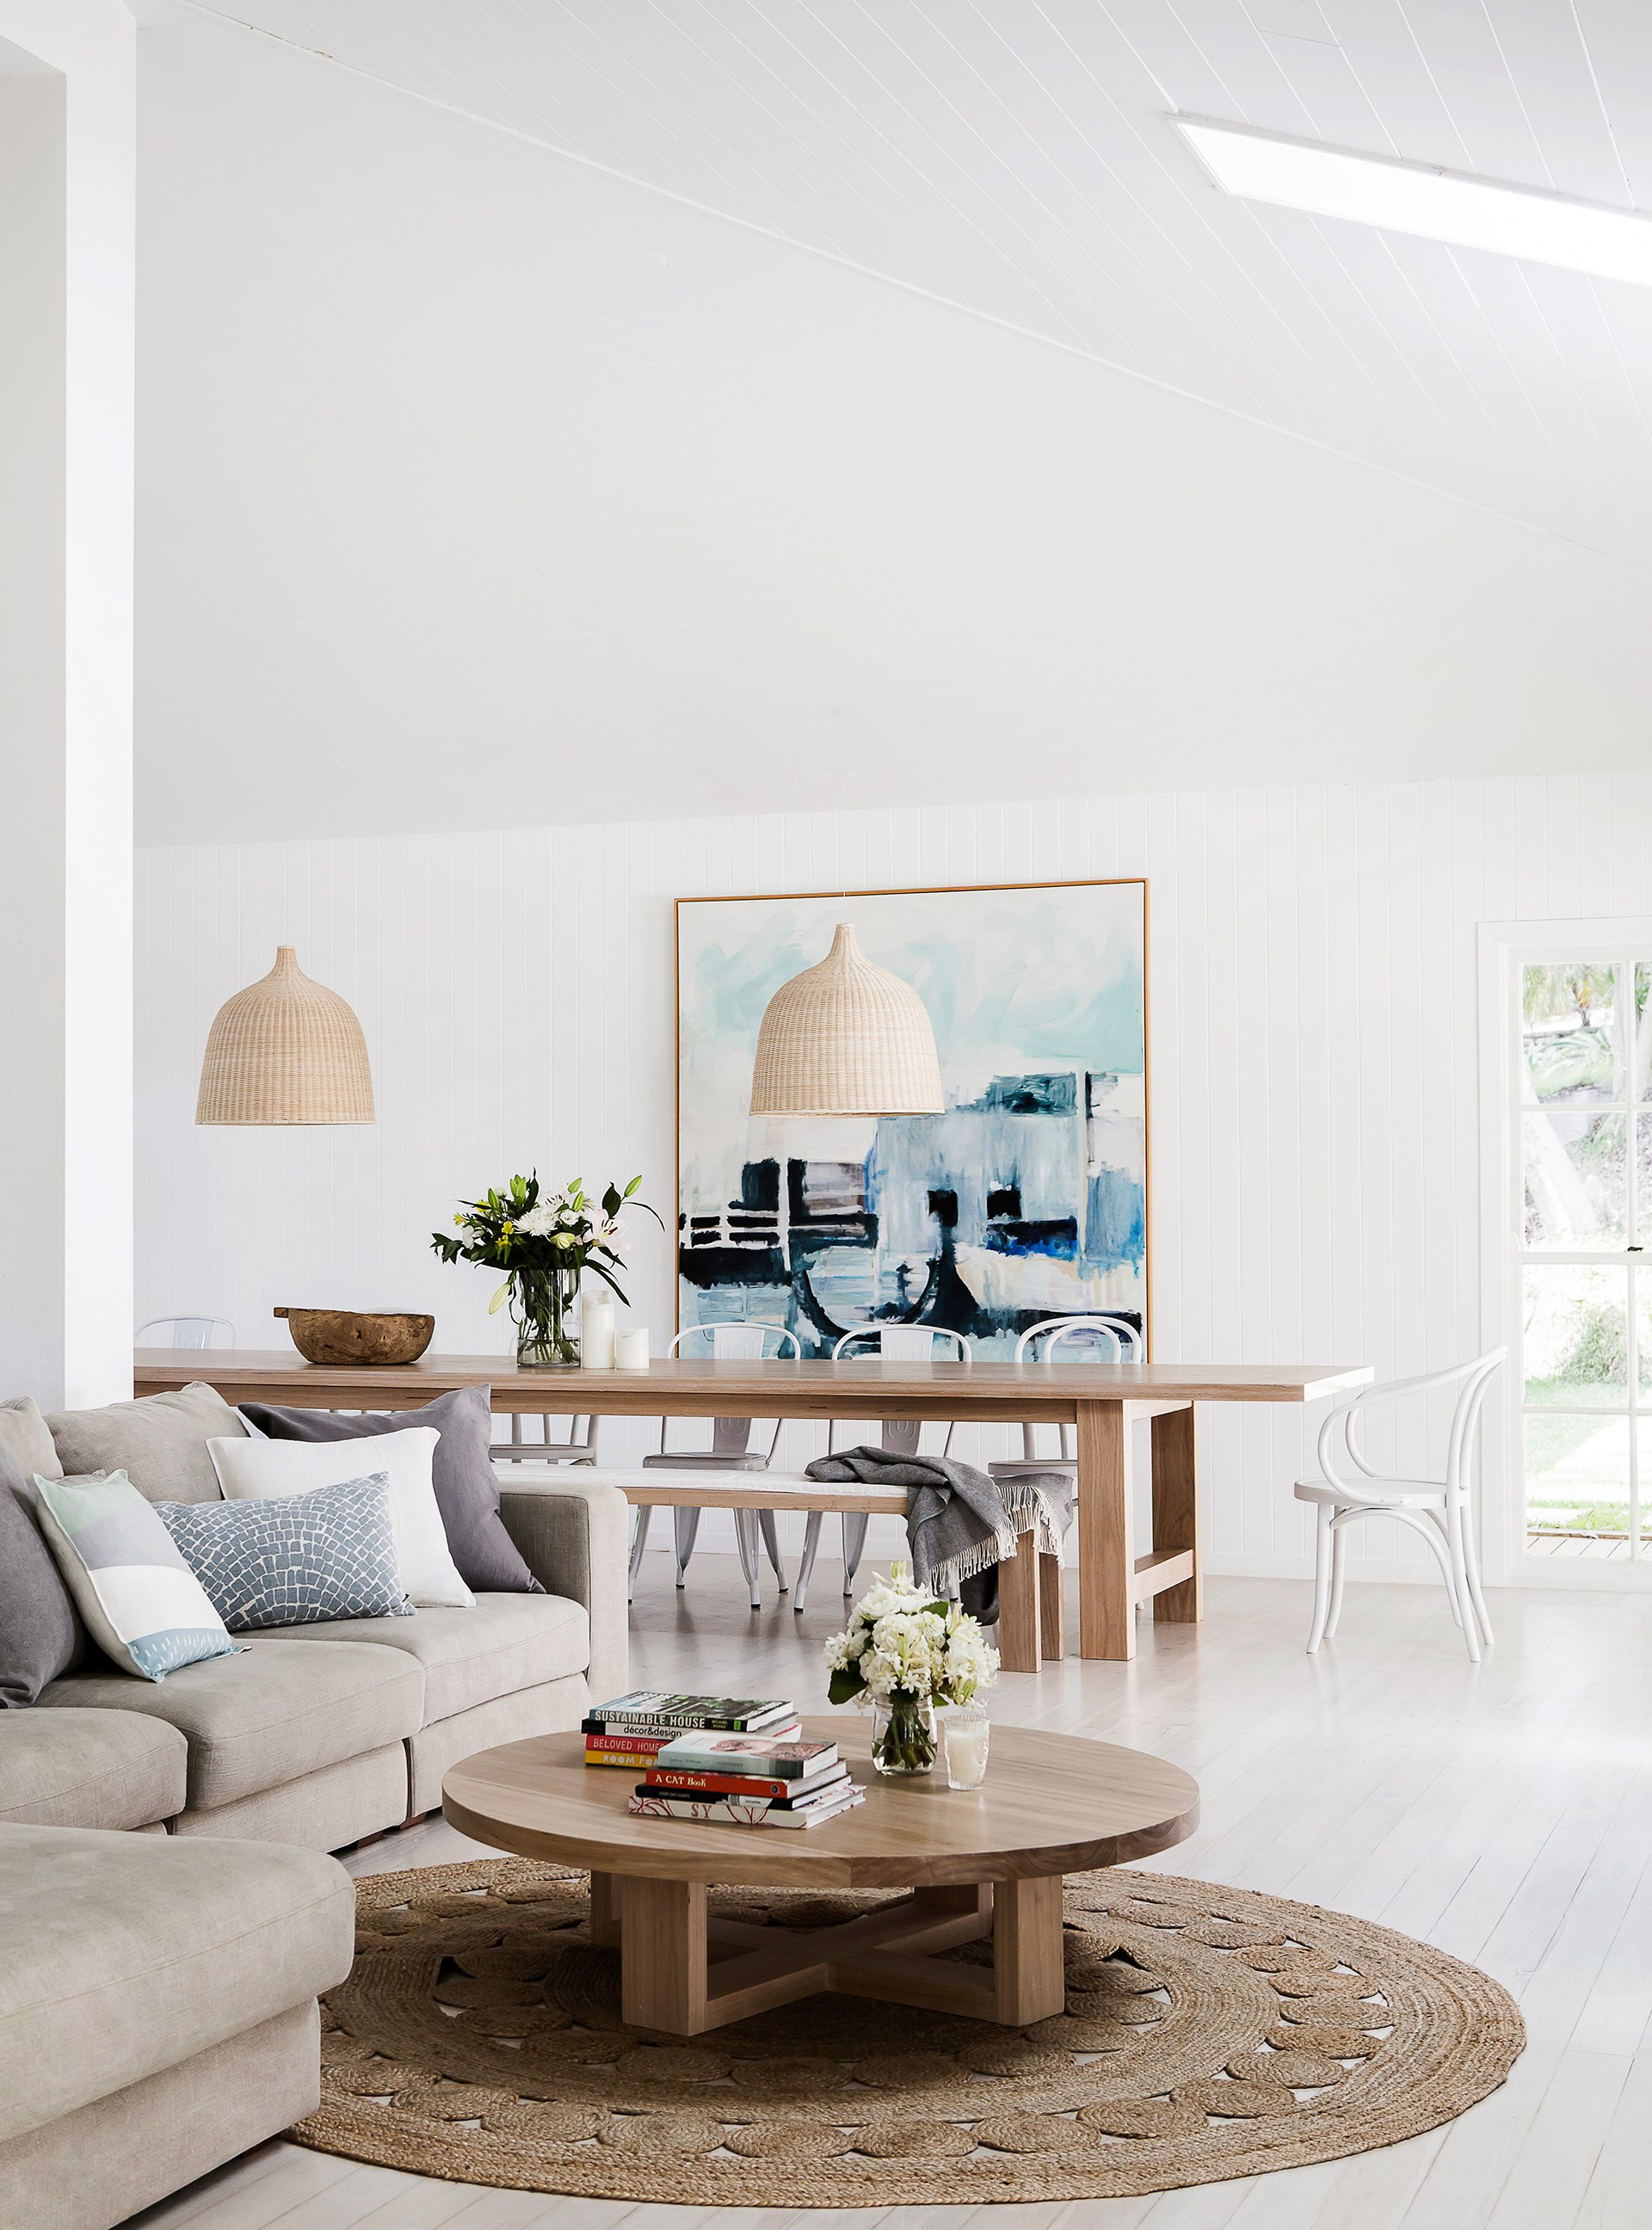 **Kate Nicholson** This coastal home in Avalon on Sydney's northern beaches received a minimalist makeover with a fresh result. [See the full home here](http://www.homestolove.com.au/minimalist-coastal-style-house-4076) or [vote for this home](http://www.homestolove.com.au/homes-reader-home-of-the-year-4499).